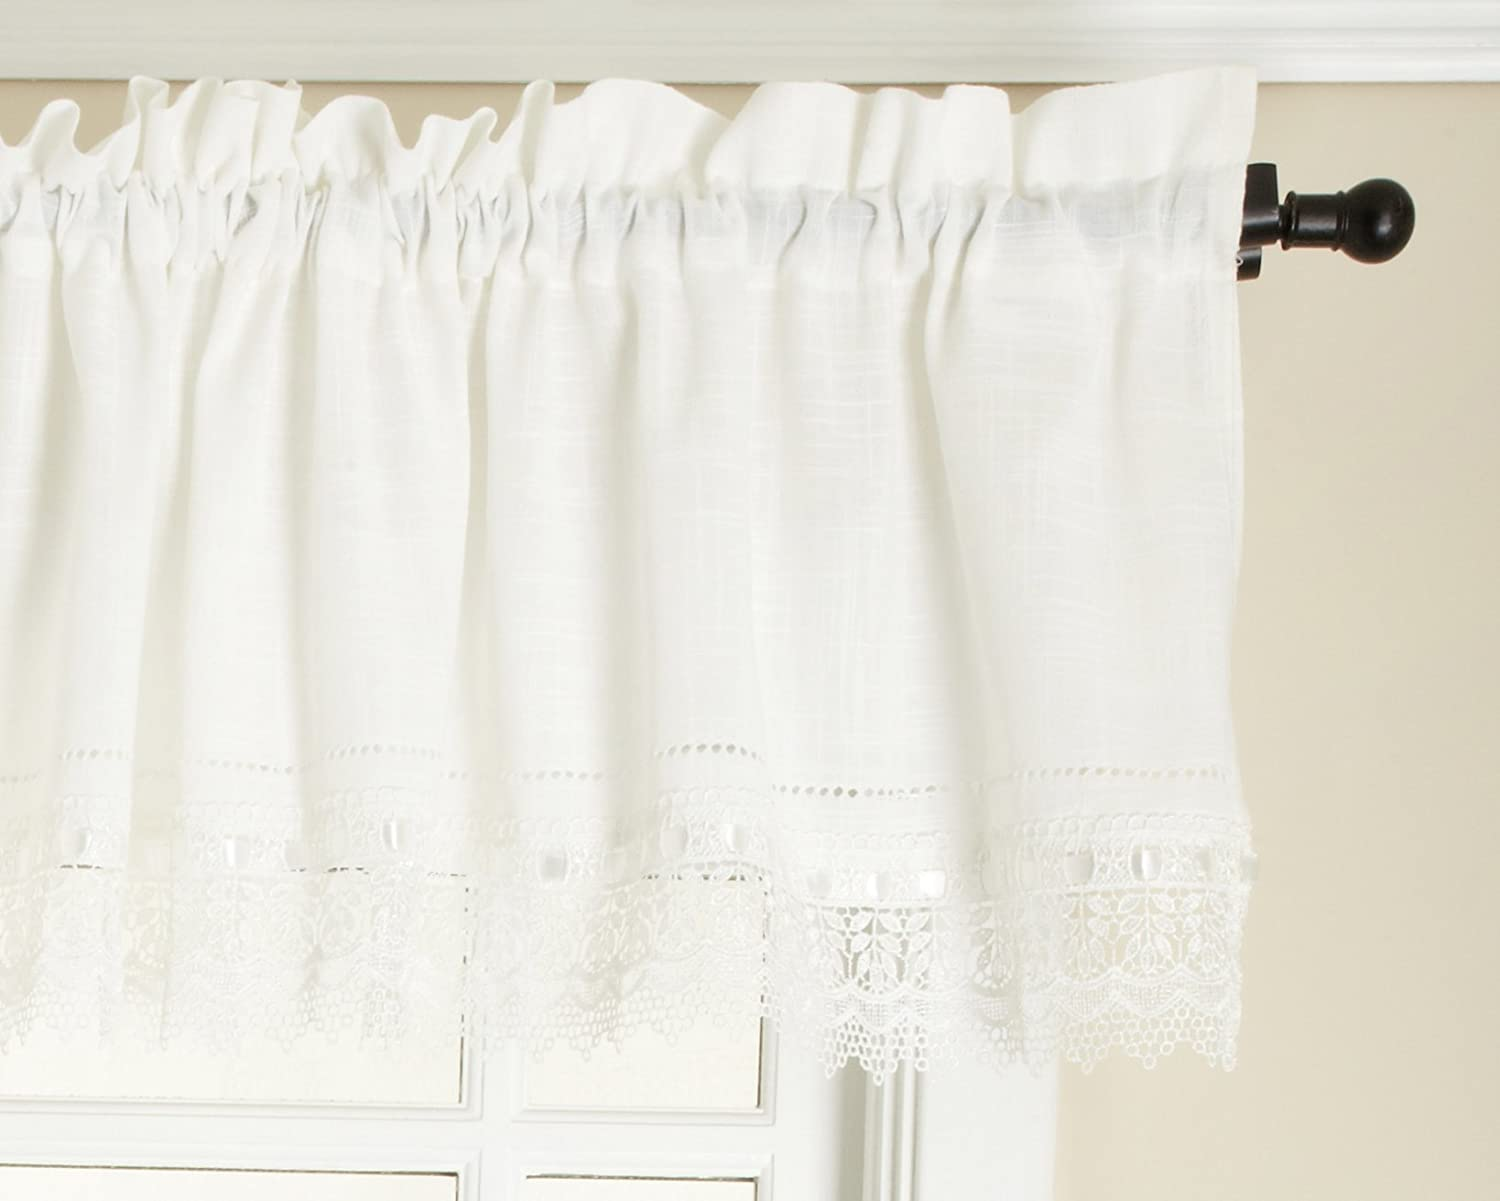 Renaissance Home Fashion Sophia Valance with Macrame Band, Ivory, 58-Inch by 14-Inch SOPHIA-TV